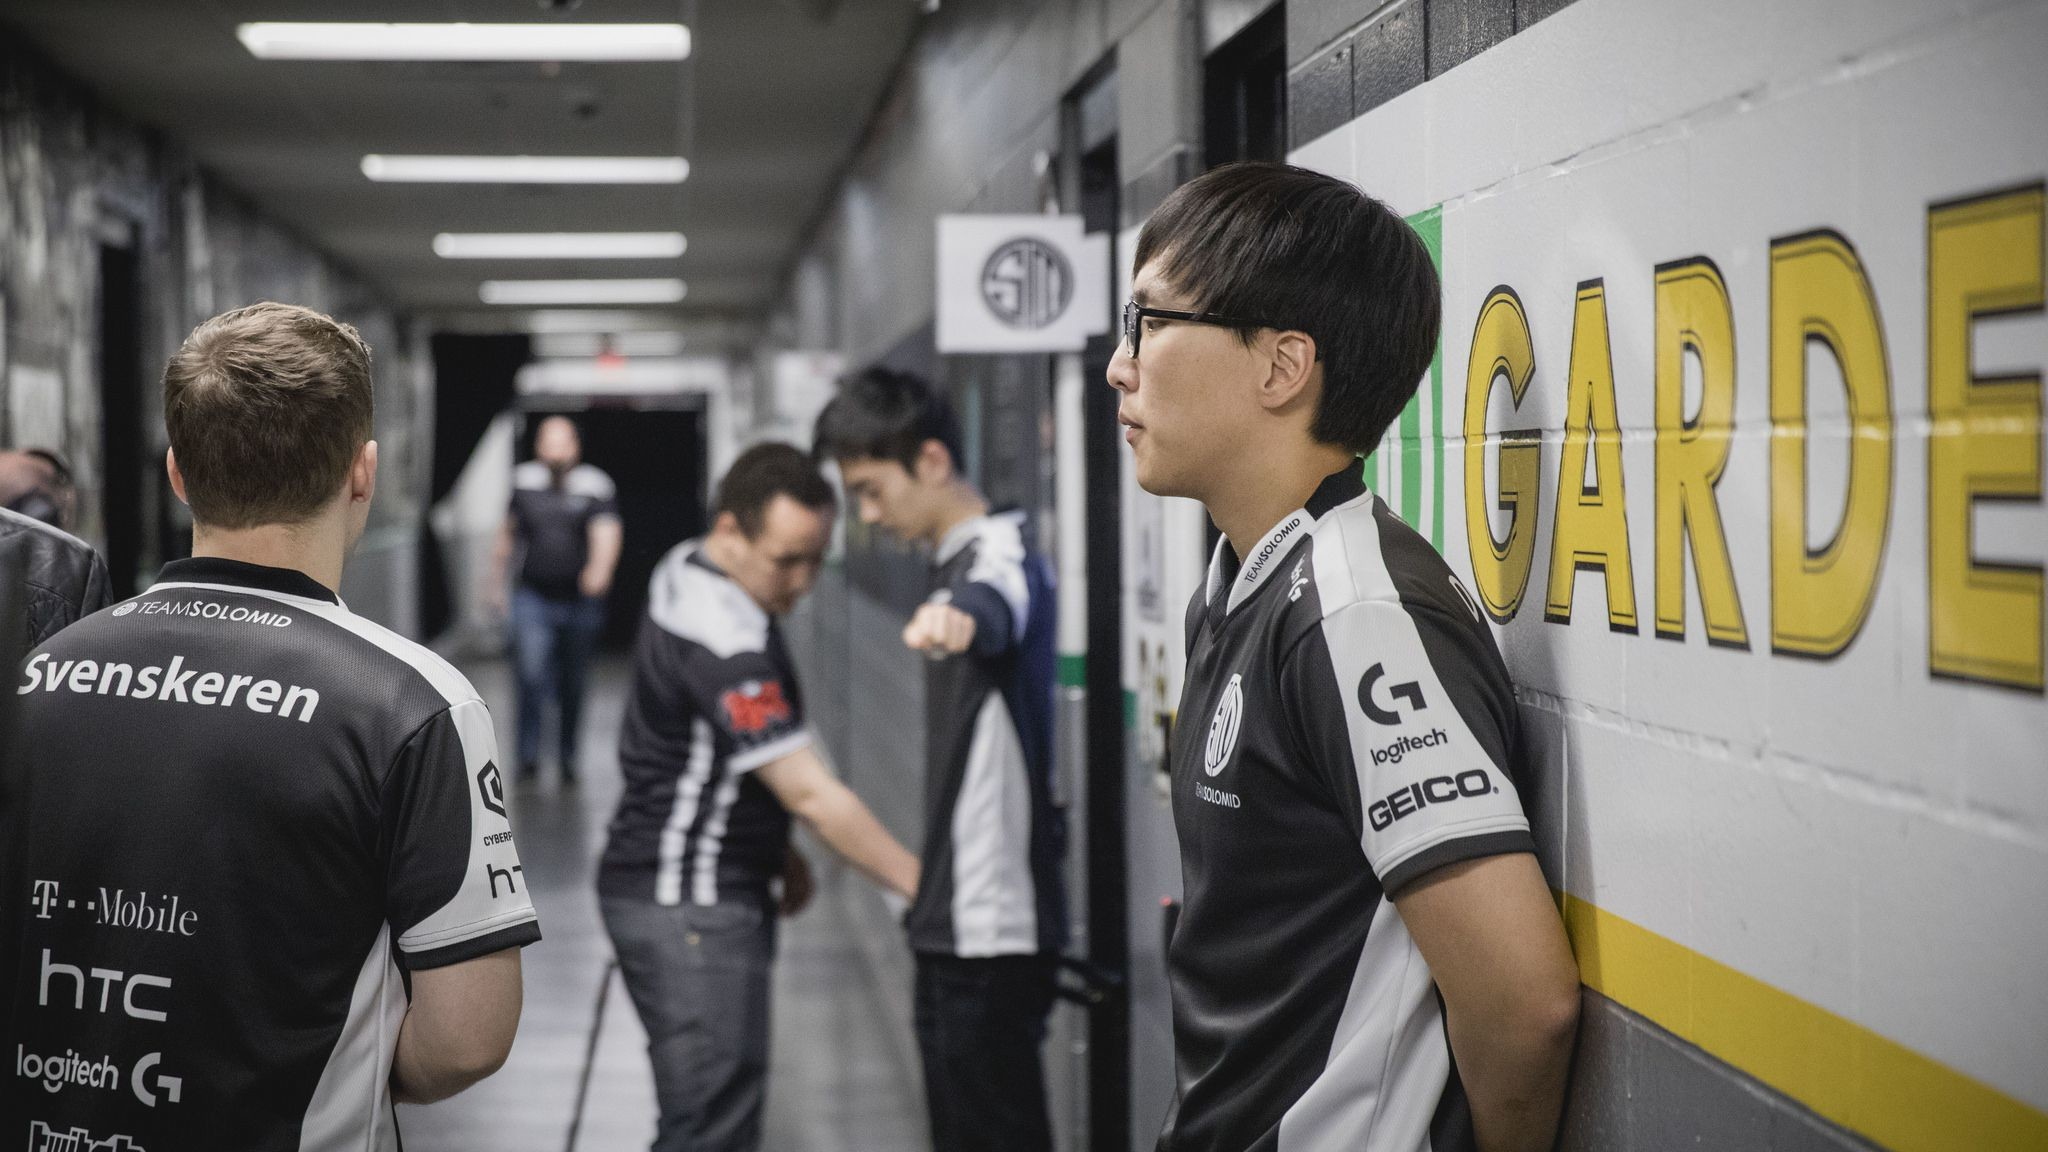 Res: 2048x1152, Reports suggest Doublelift could be heading back to Team Liquid | News |  Cybersport.com